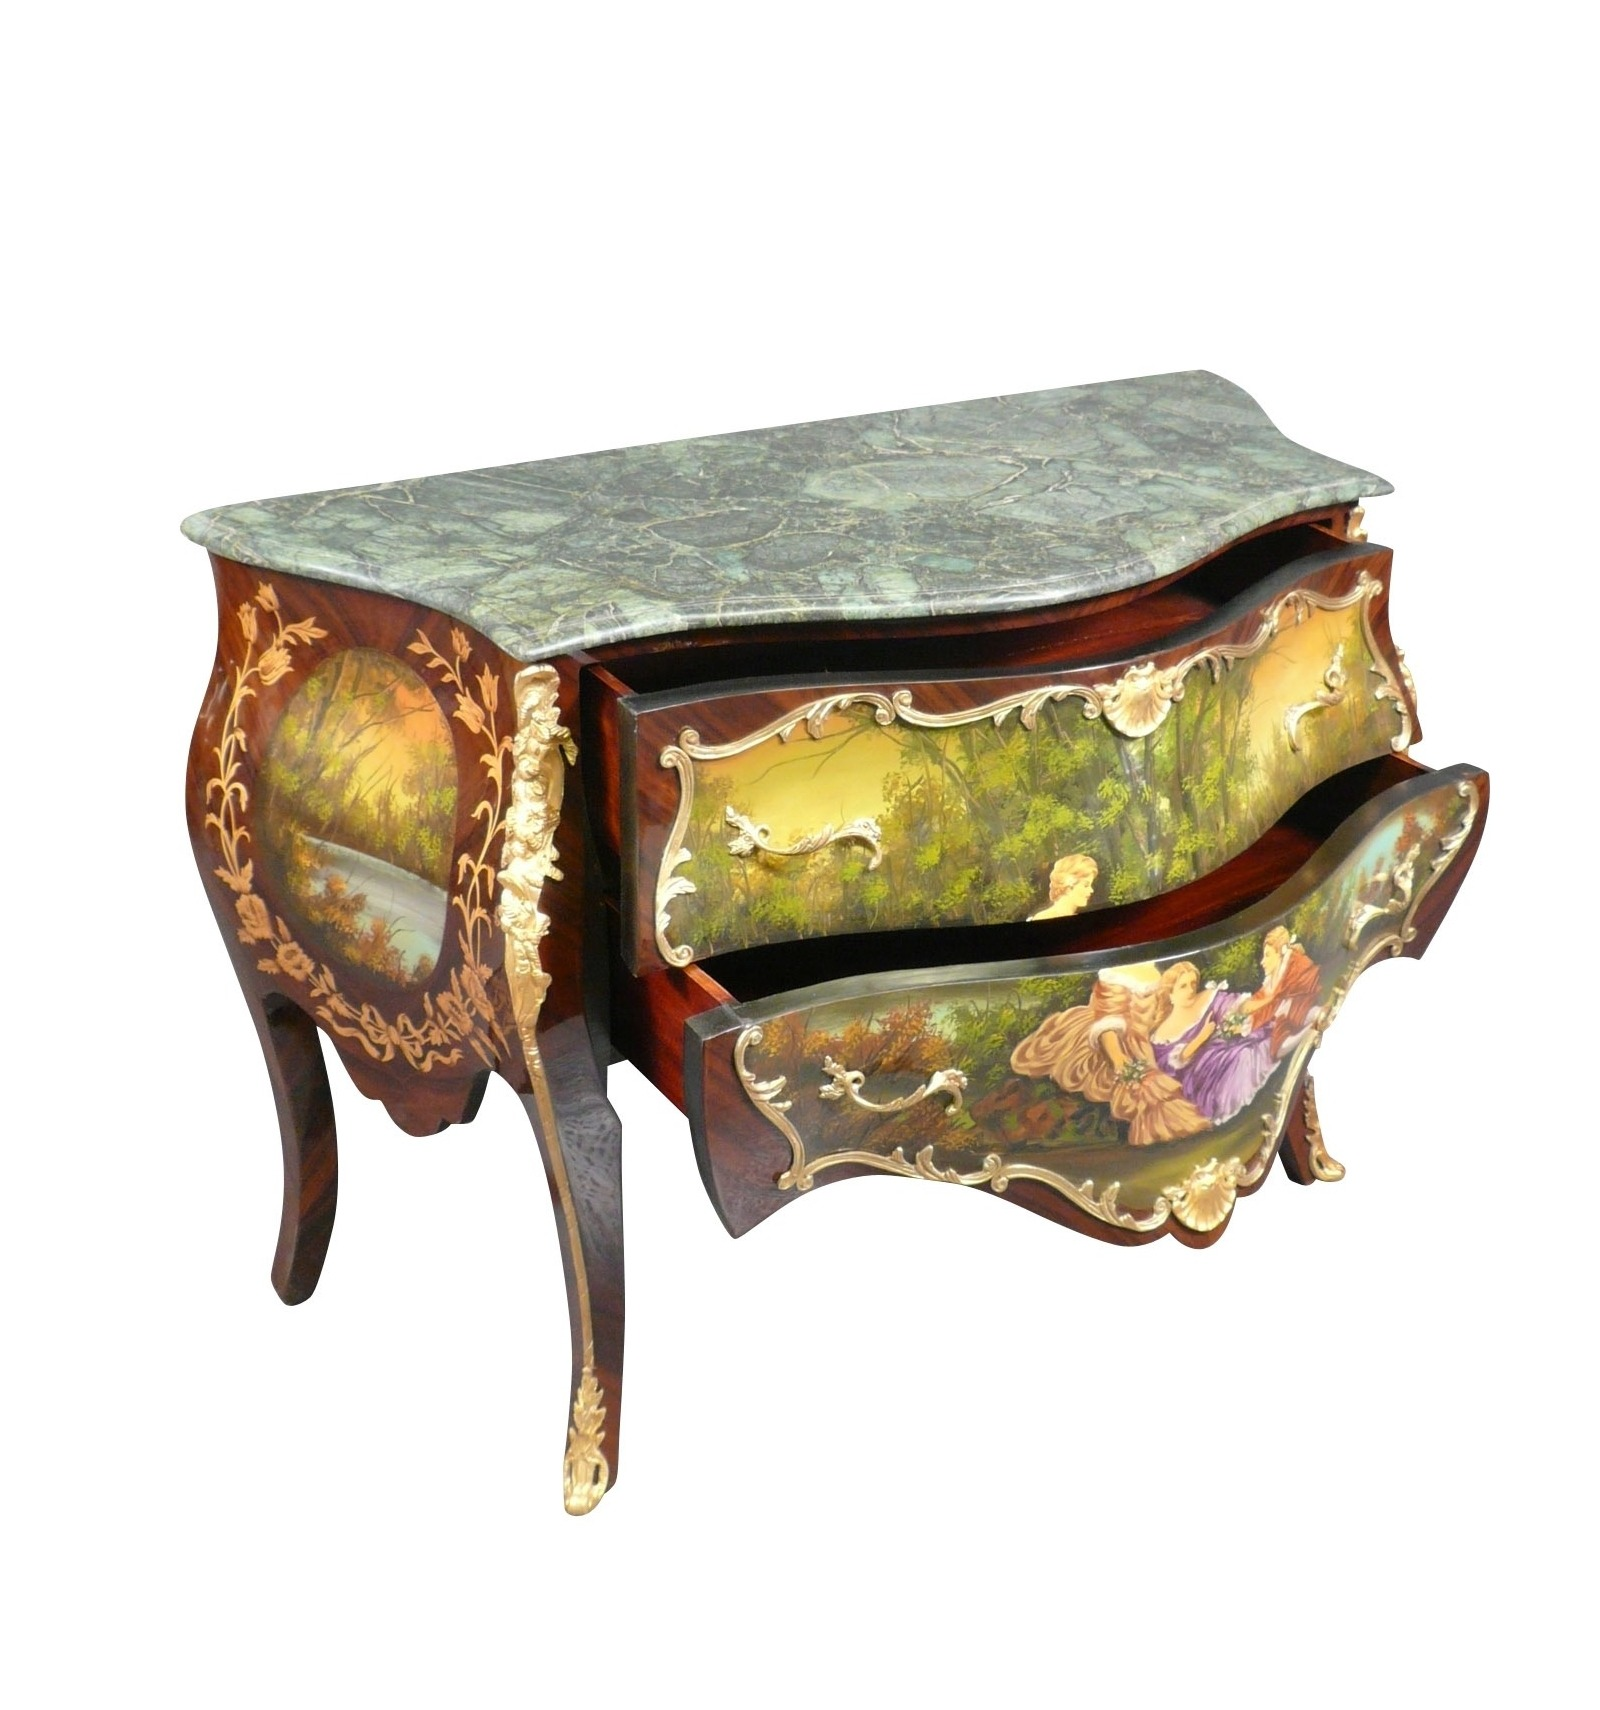 Louis Xv Commode With A Courtly Scene